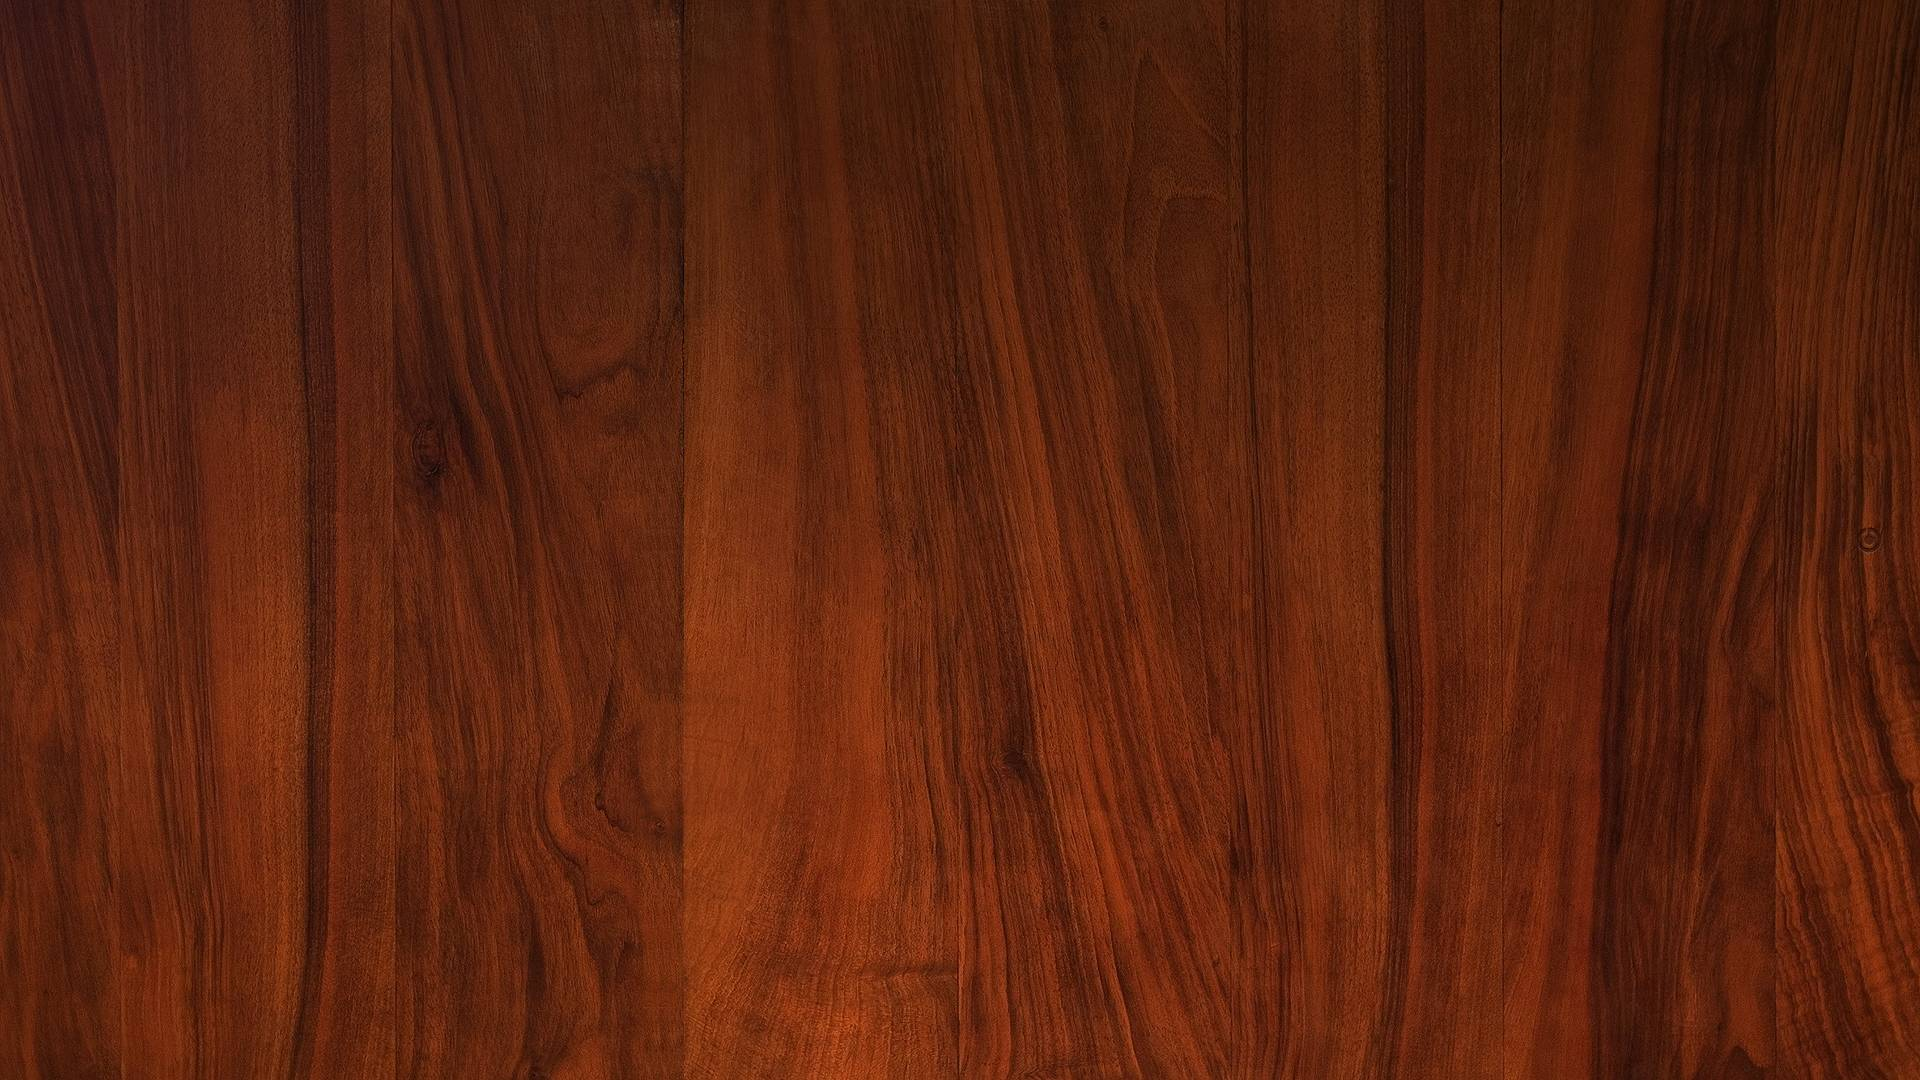 wallpapers for wood desktop background